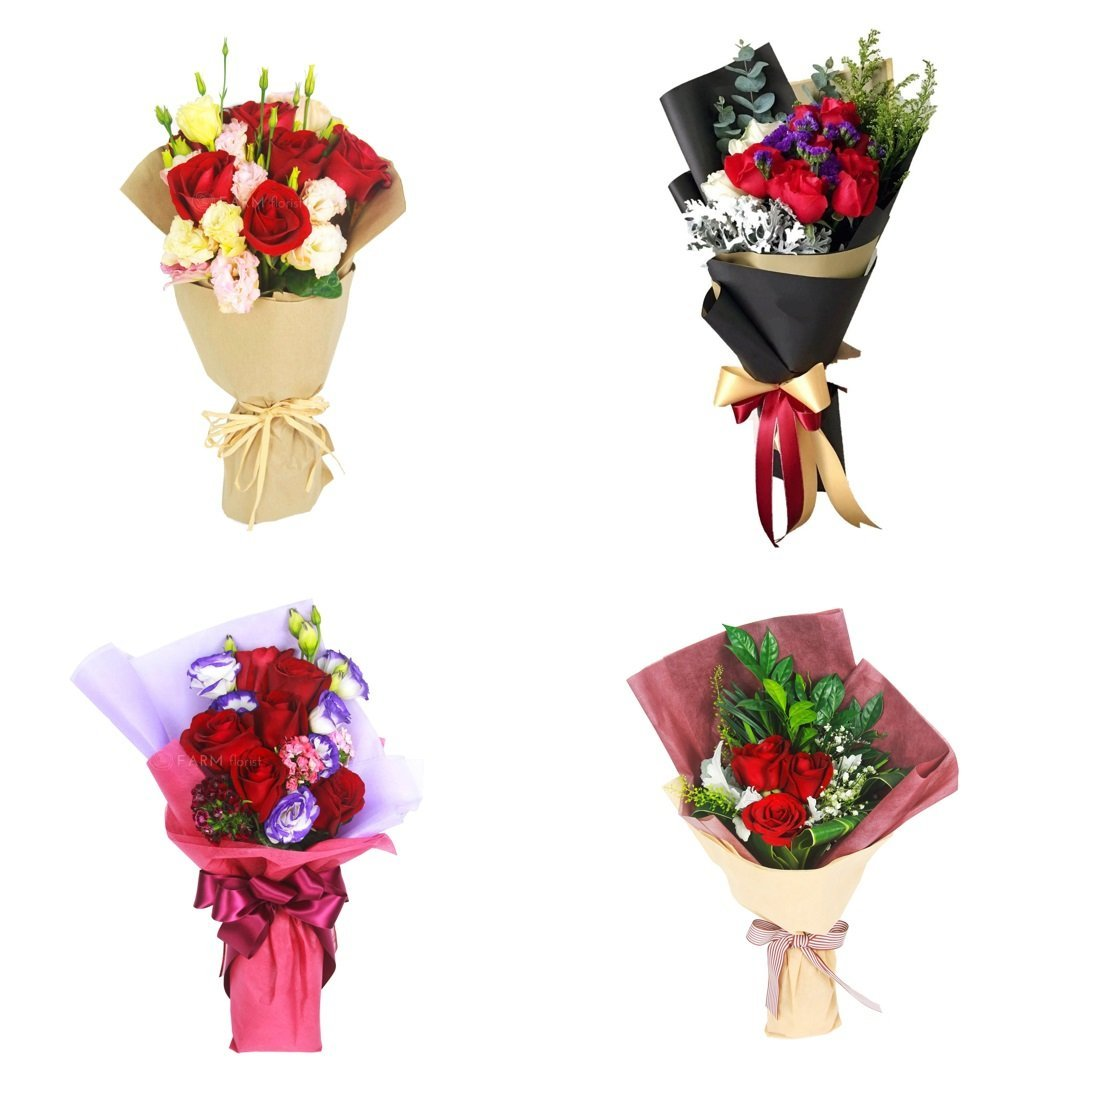 Farm florist singapore cheapest florist in singapore surprise florist singapore izmirmasajfo